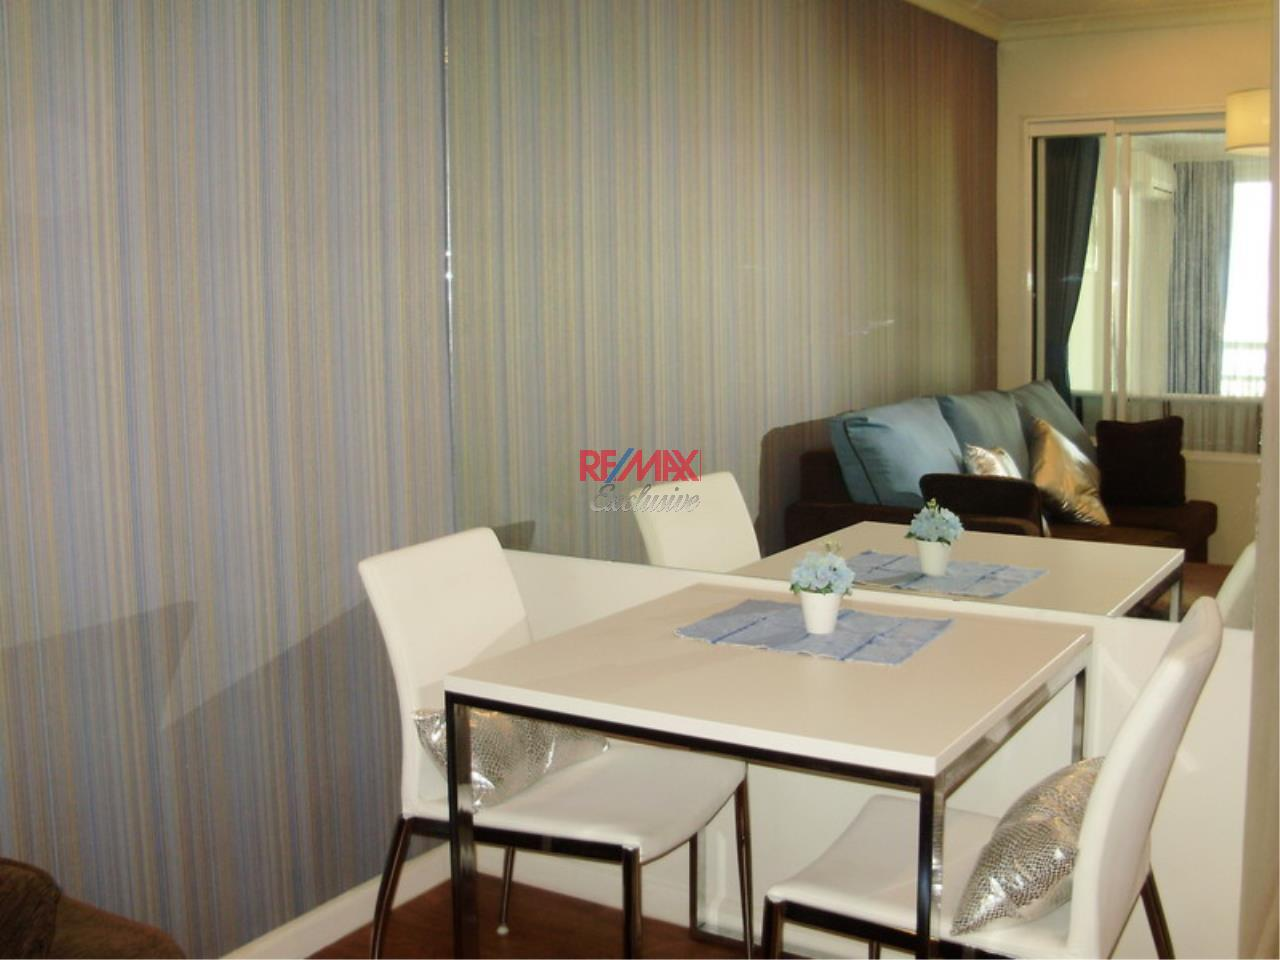 RE/MAX Exclusive Agency's Grand Park View 1 Bedroom nice Decorated for sale 3700000 7